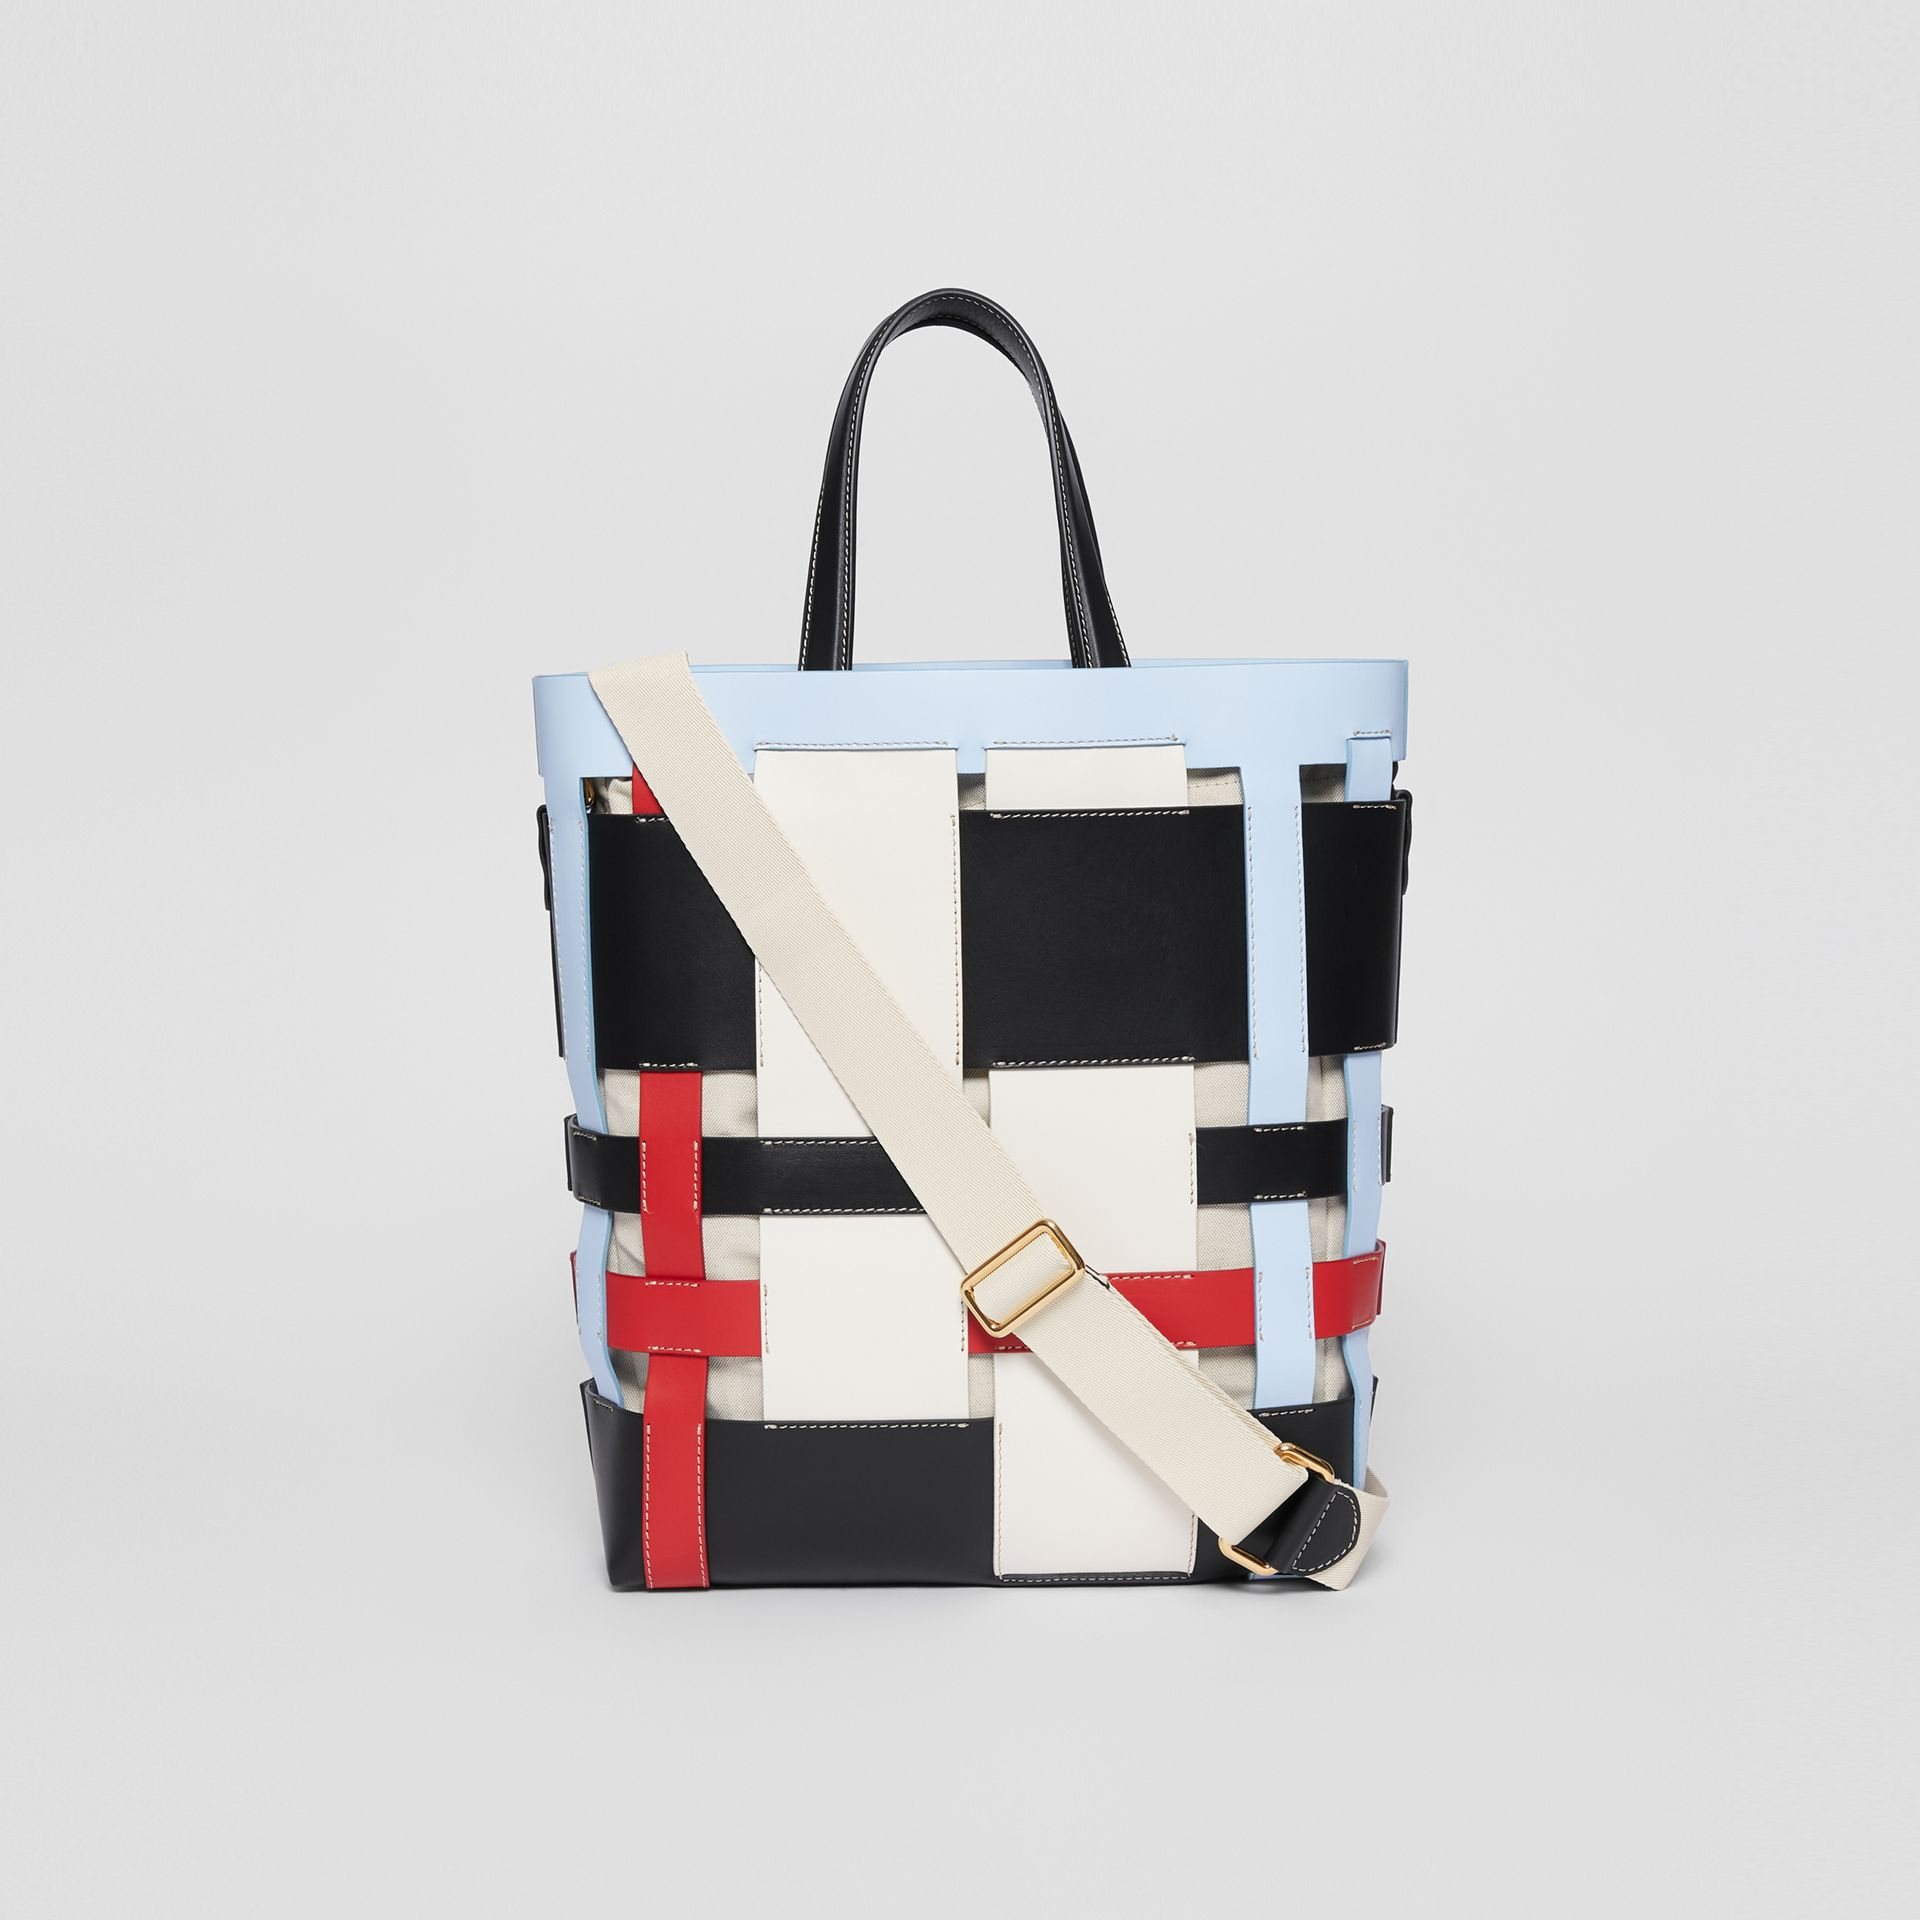 Medium Colour Block Leather Foster Tote in Blue - Women | Burberry United Kingdom - gallery image 5